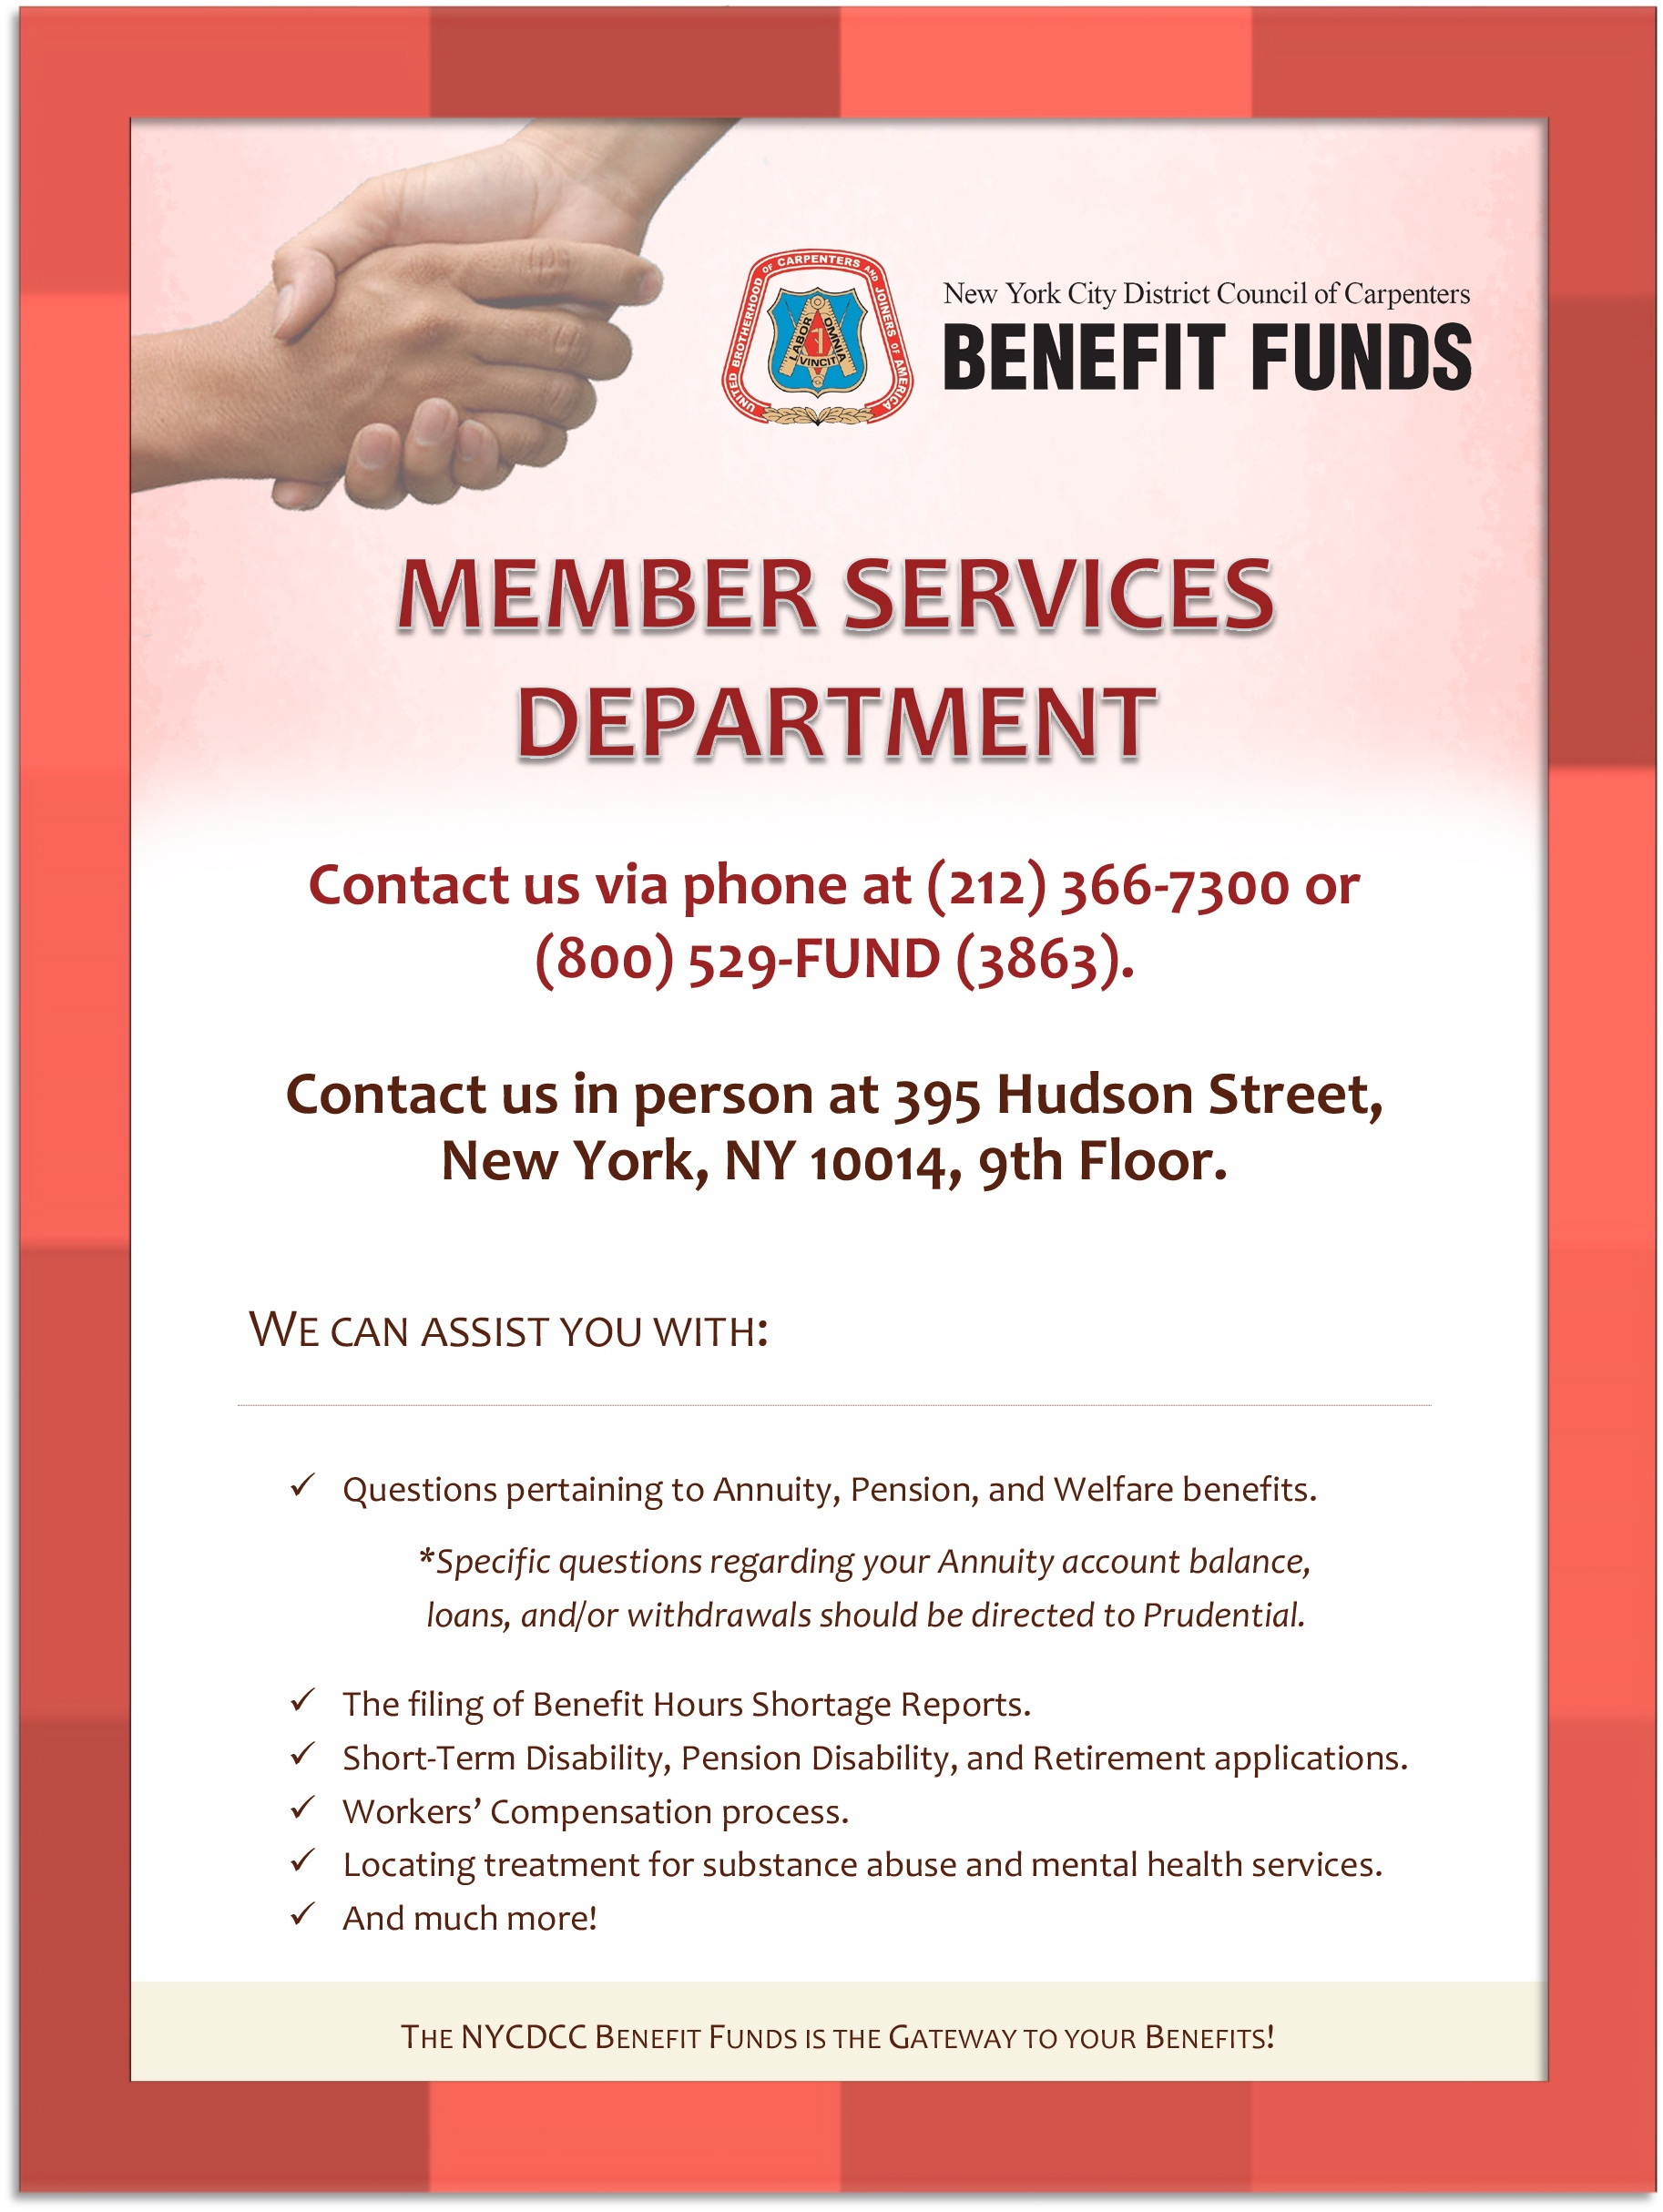 Member Services Department Flyer 2016